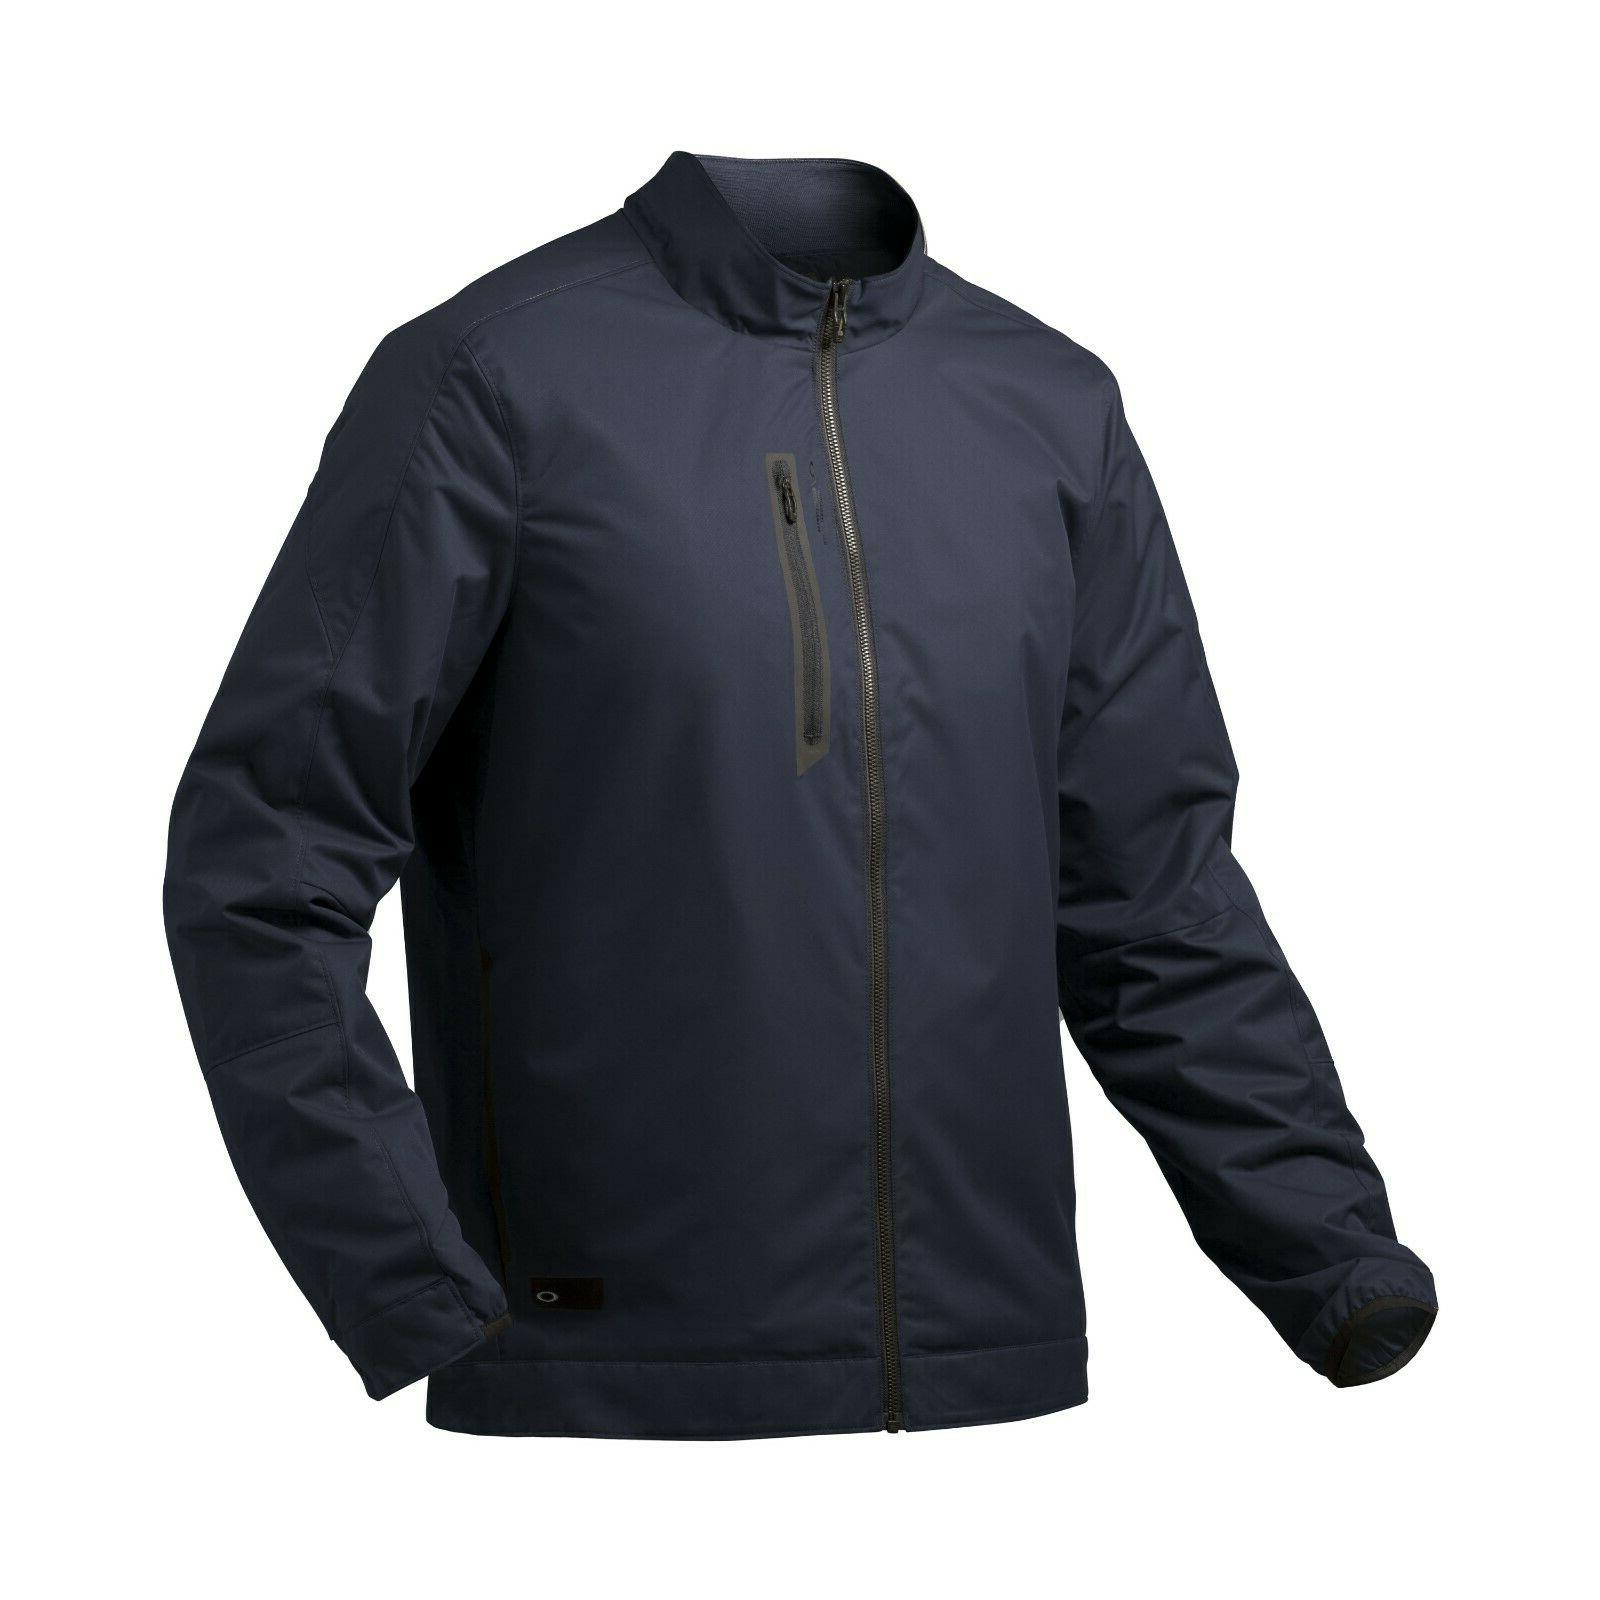 city performance bomber jacket men s sizes